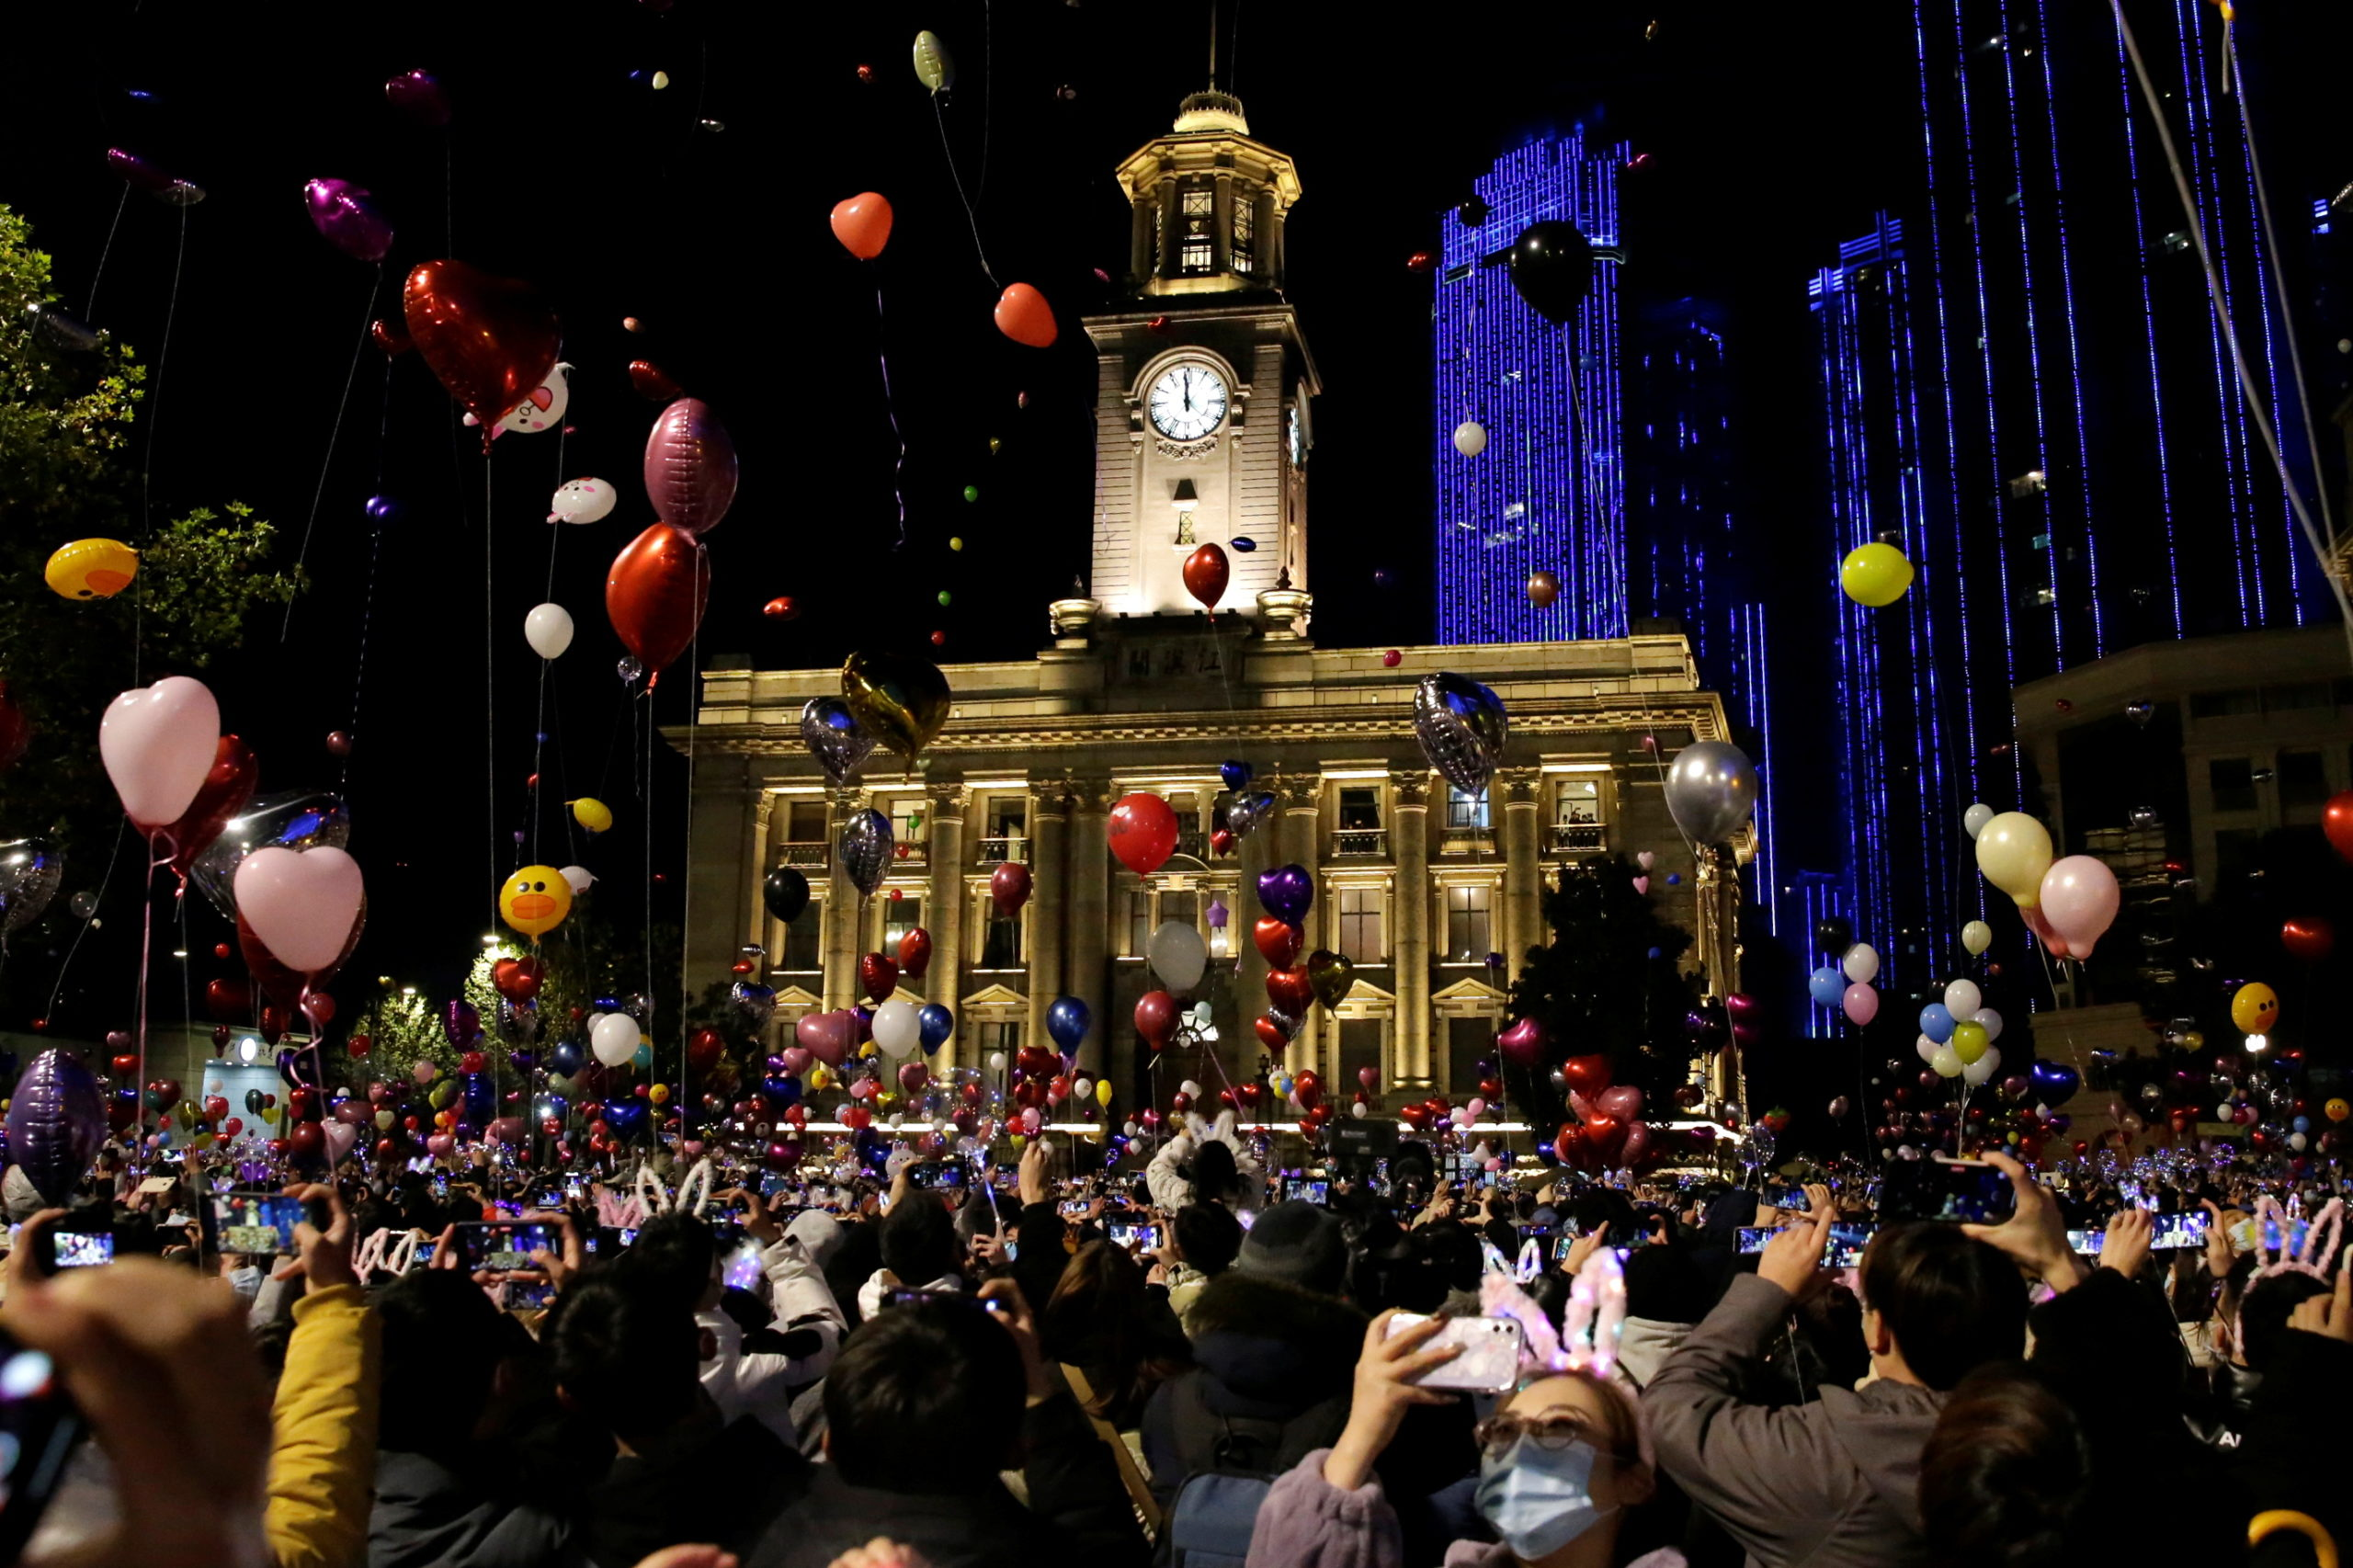 People hold balloons as they gather to celebrate the arrival of the new year, following the coronavirus disease (COVID-19) outbreak, in Wuhan, China December 31, 2020.